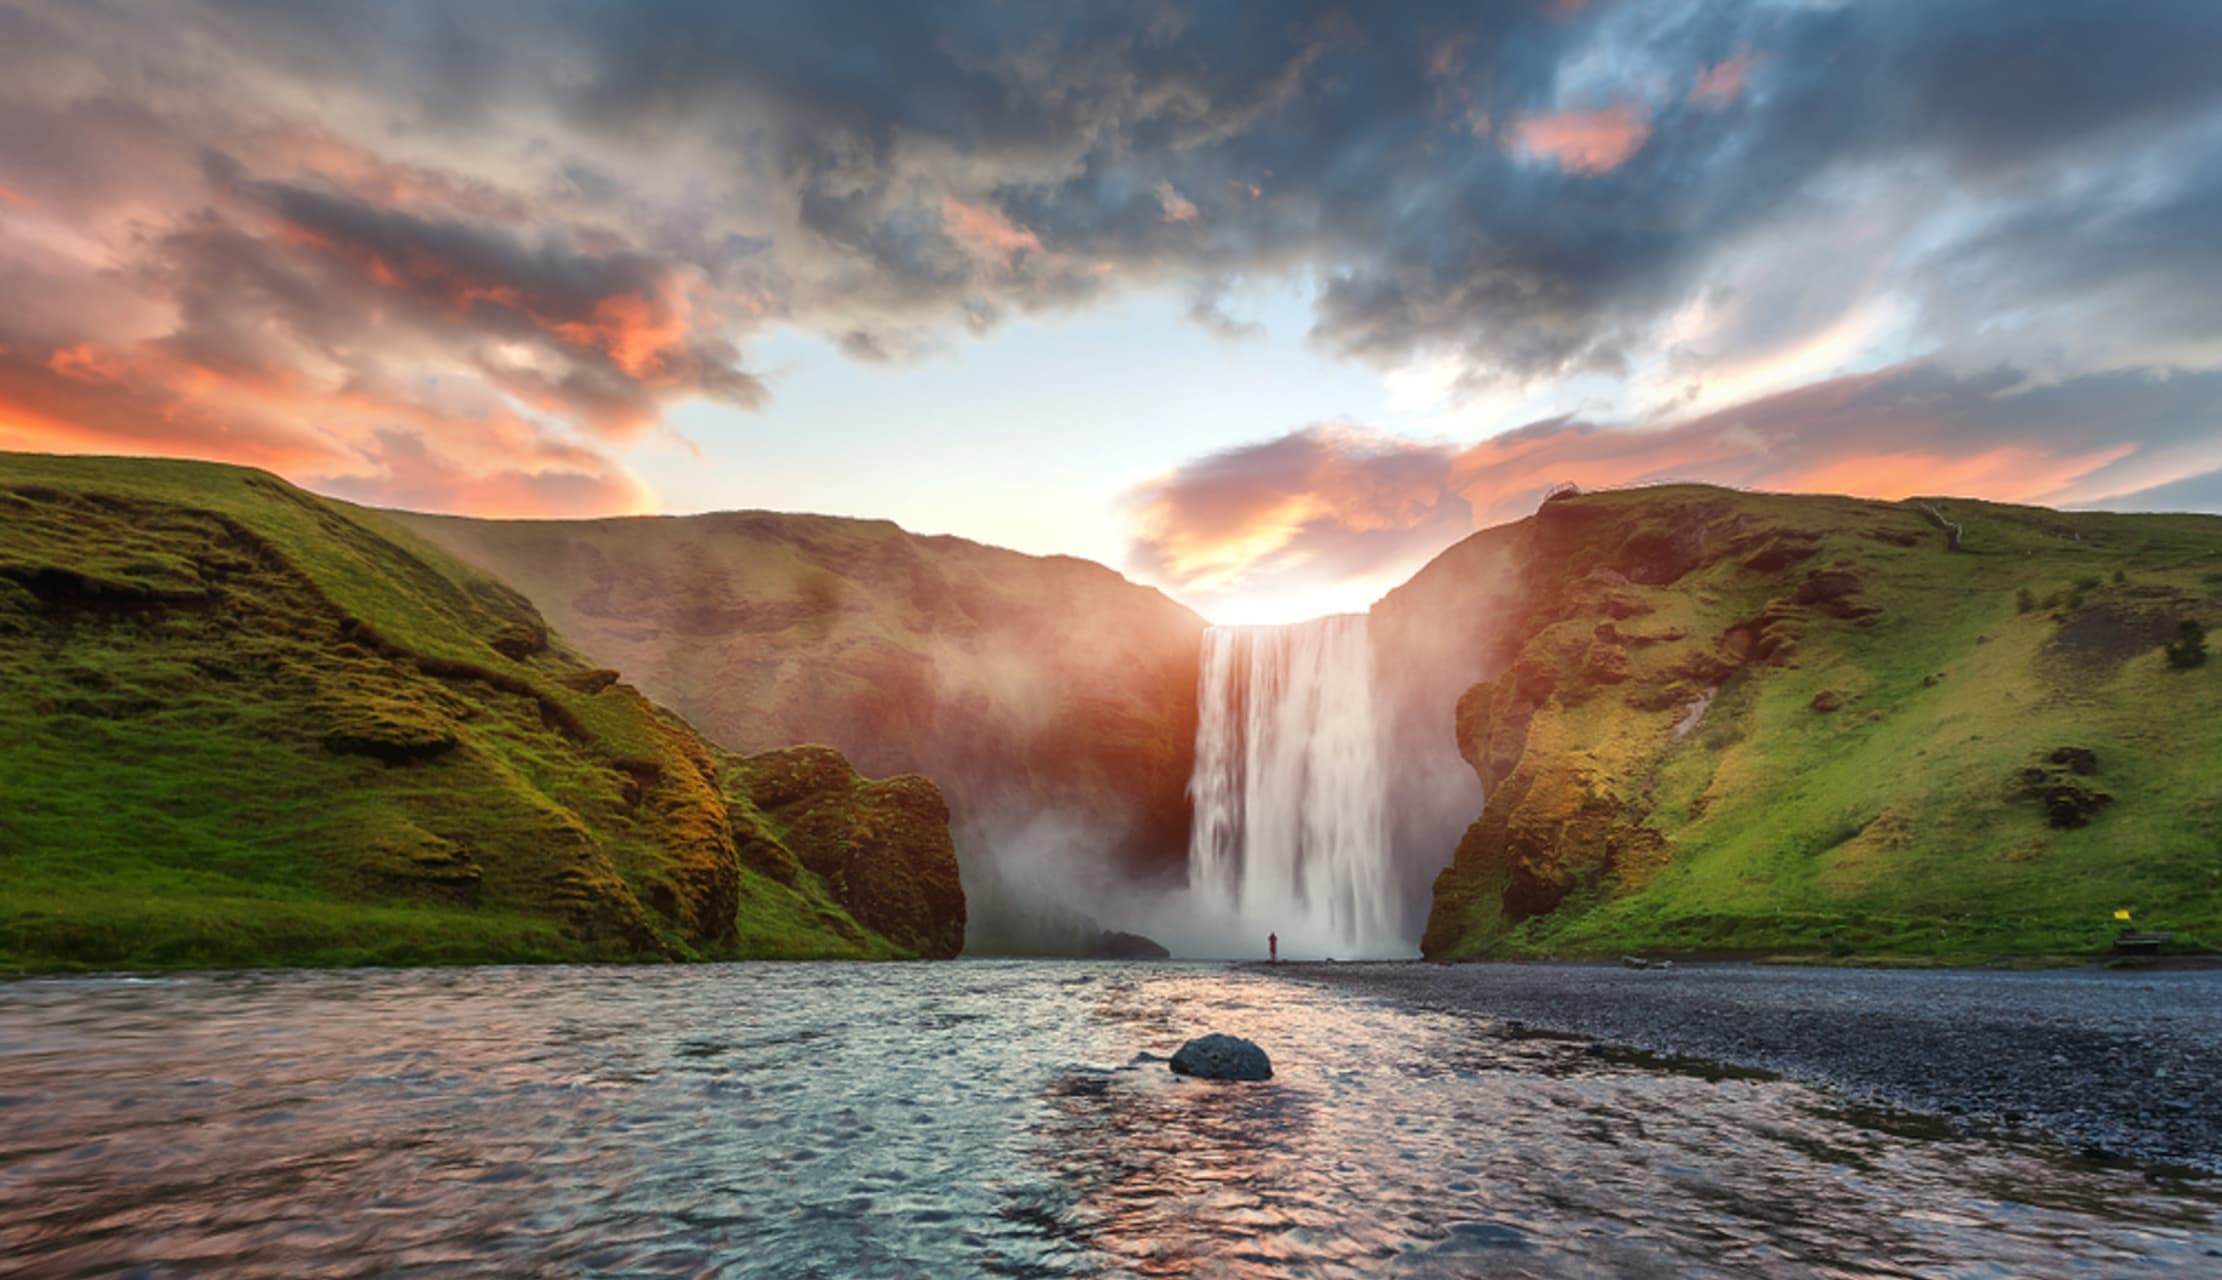 South Iceland - Skogafoss Waterfall and Iceland's Input into World Architecture – the Turf Houses.